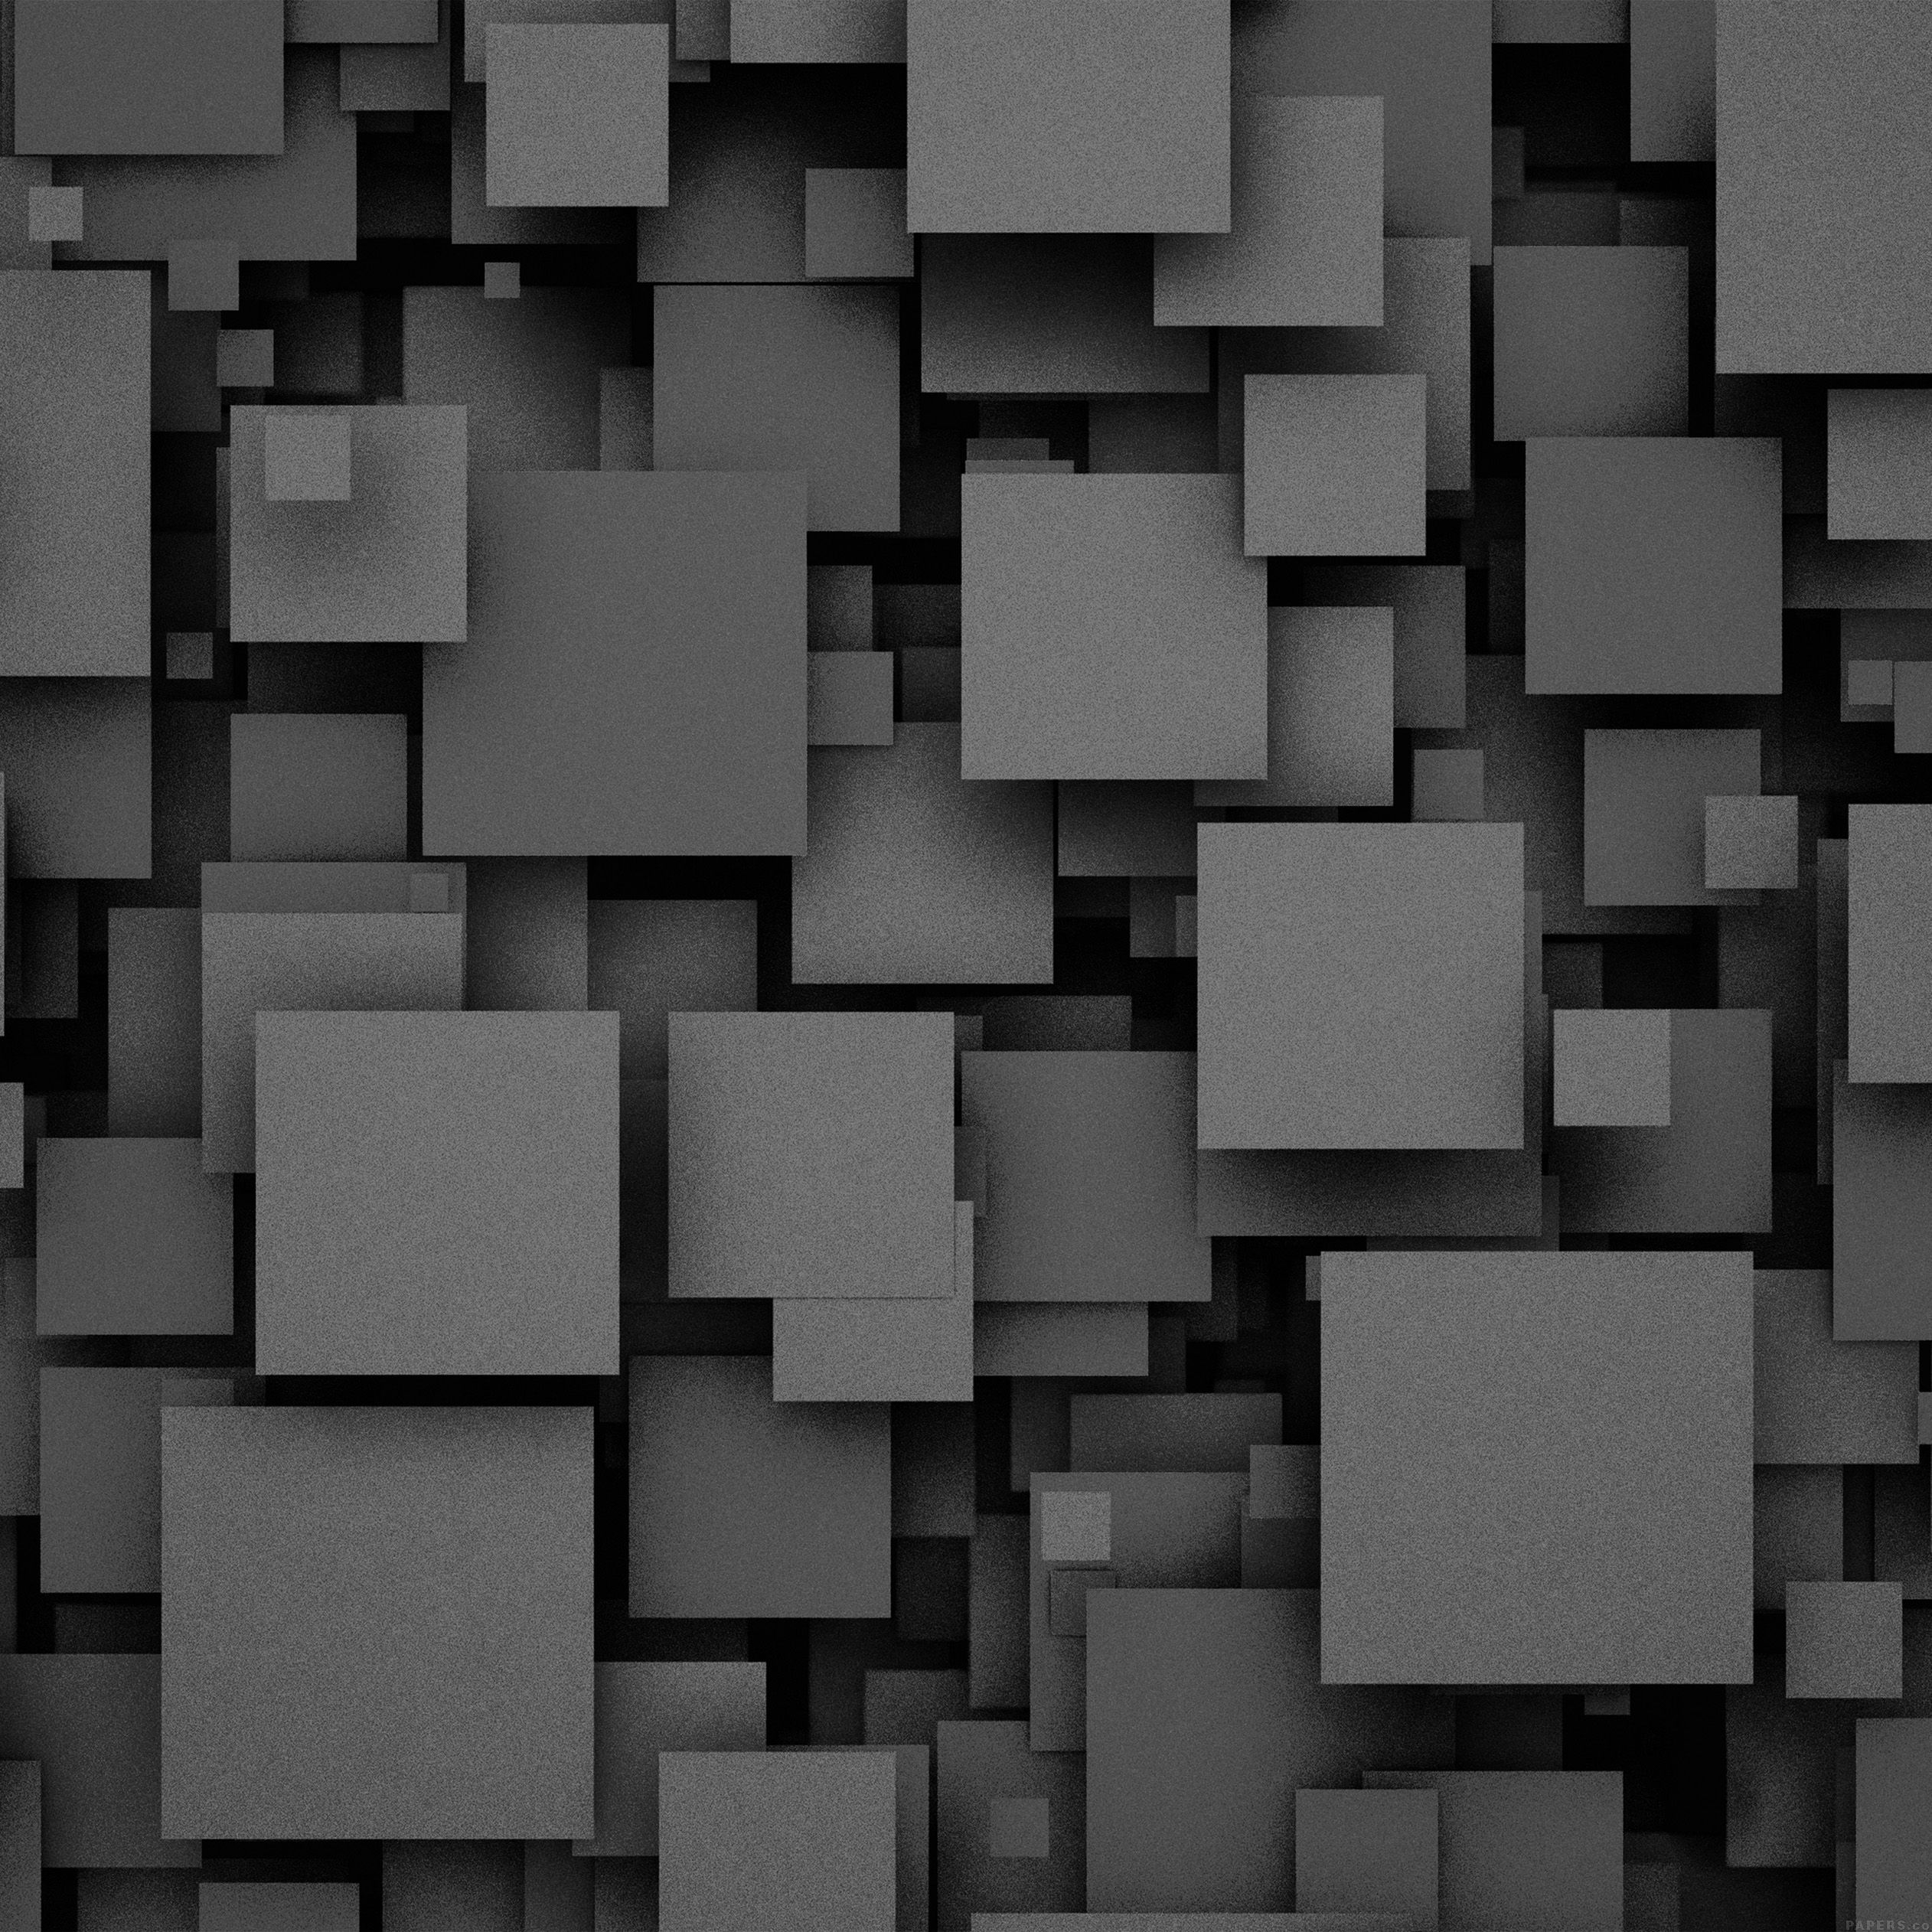 2524x2524 Textured pattern wallpapers for iPhone and iPad